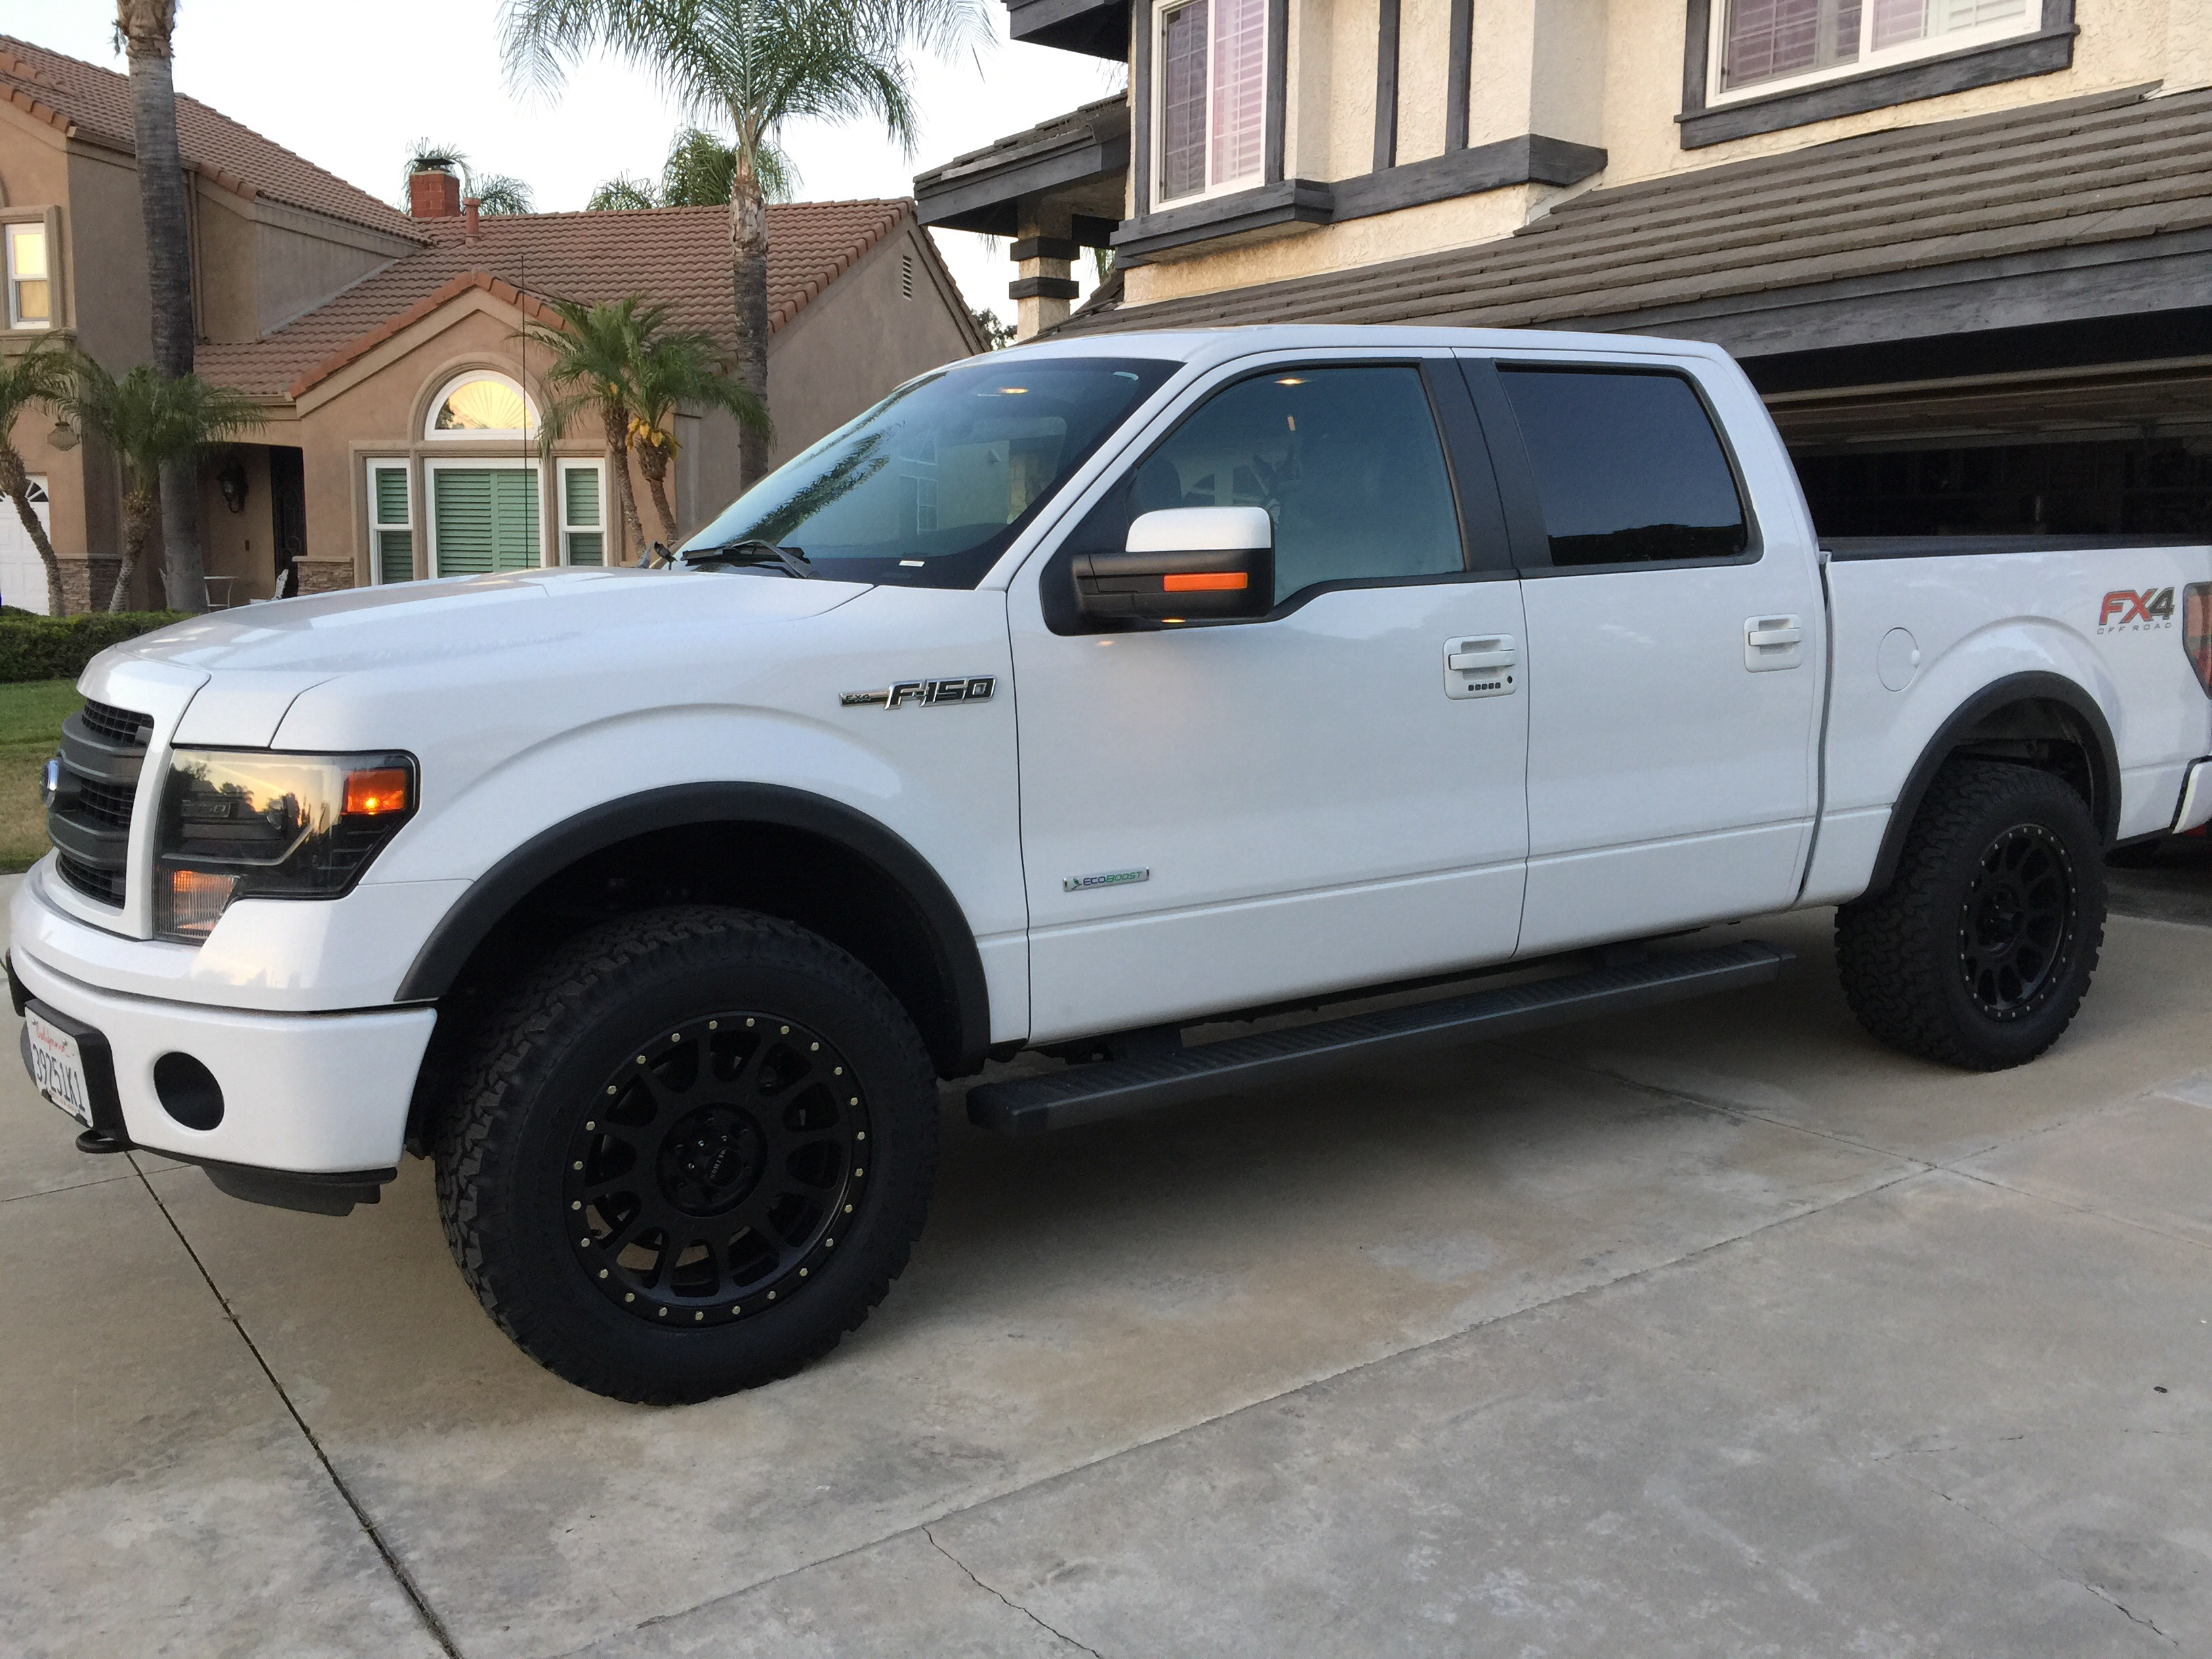 "What size tire for 14' 4x4 boost with 2.5"" leveling kit and 20x12 rims?"